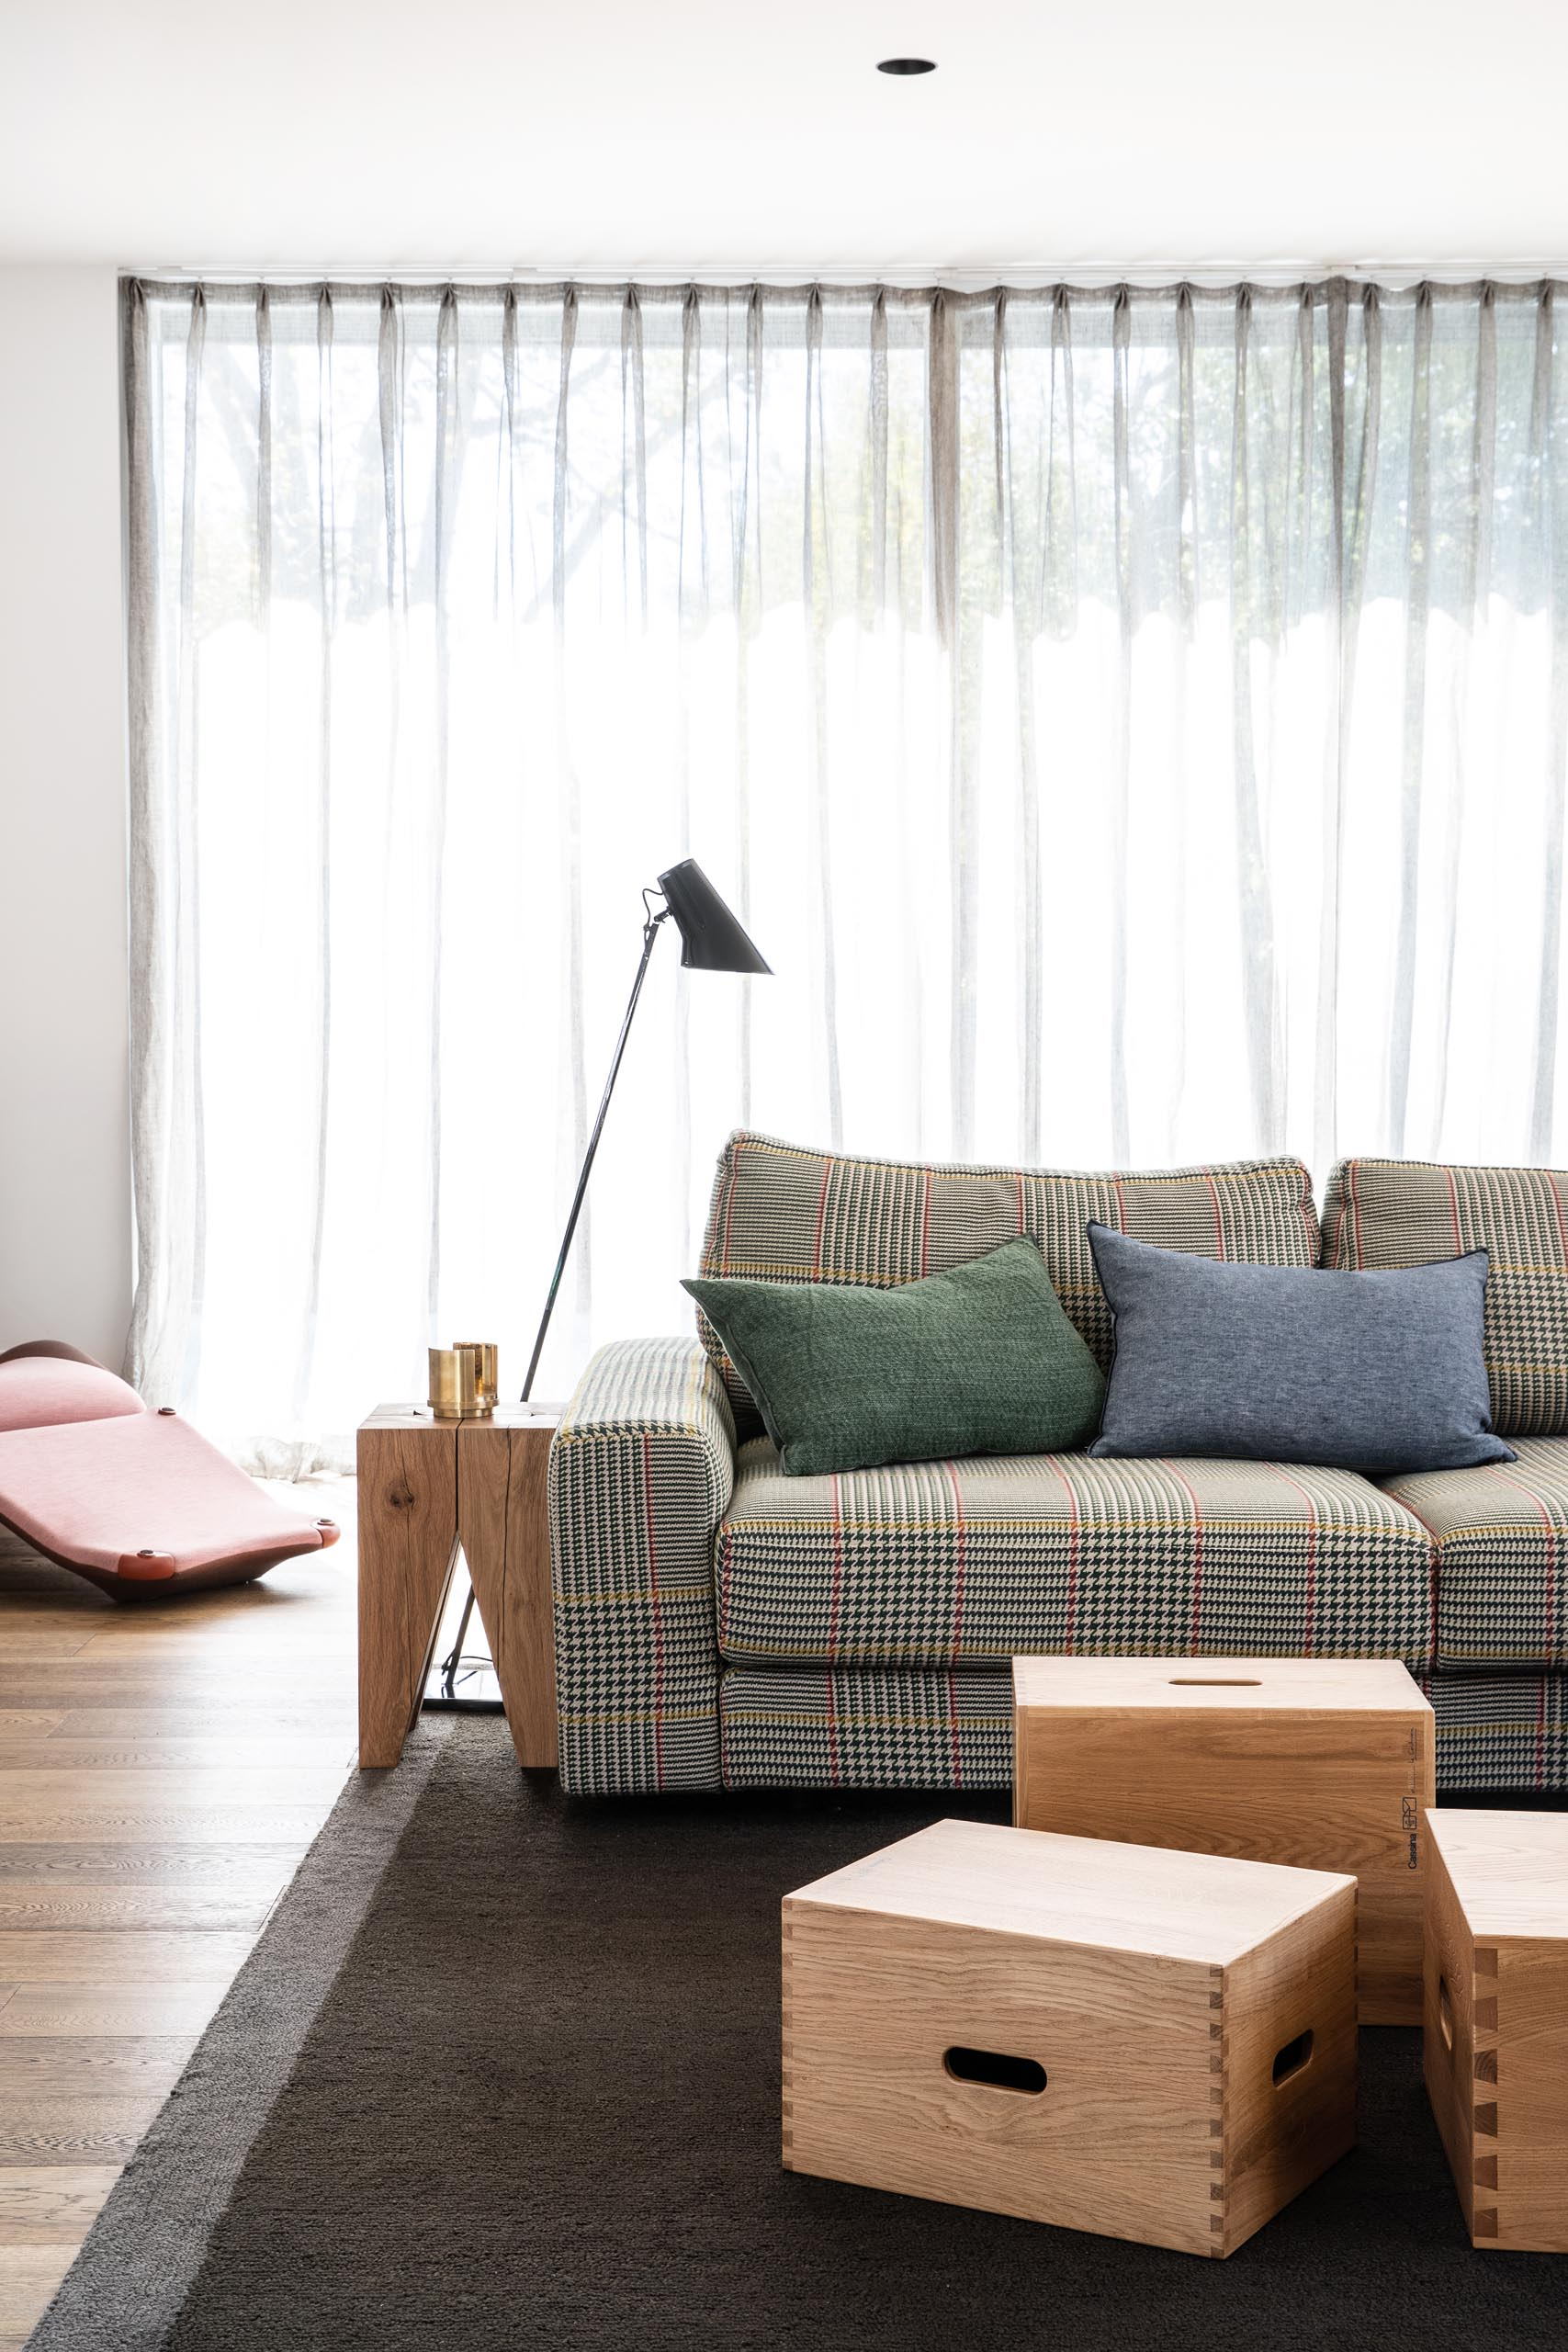 This modern living room is defined by a large dark colored rug, while wood boxes have been used to create a coffee table.